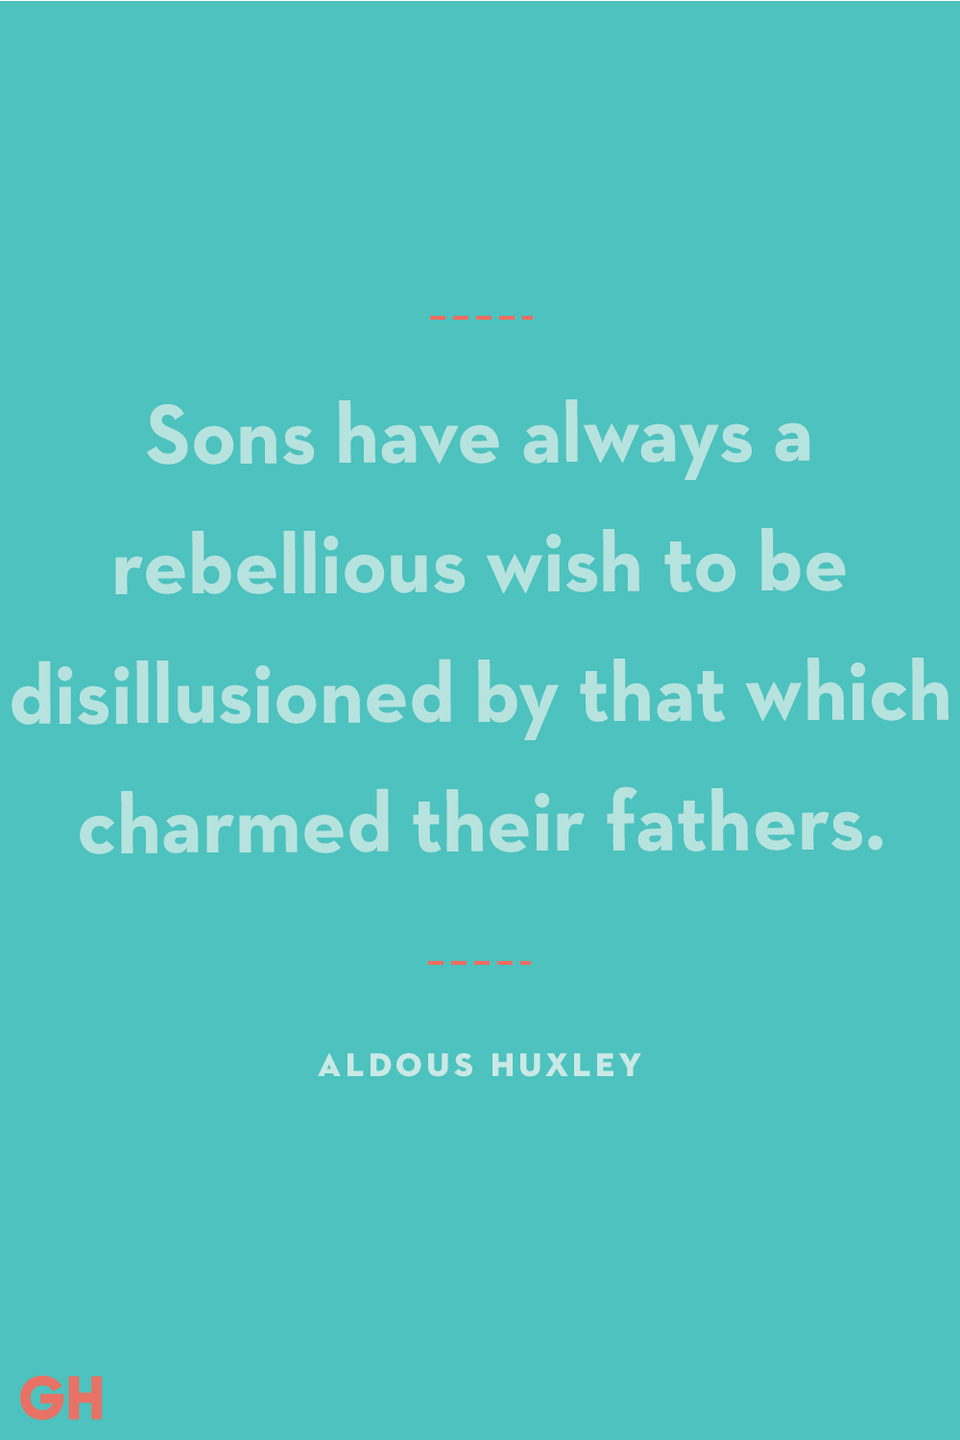 <p>Sons have always a rebellious wish to be disillusioned by that which charmed their fathers.</p>